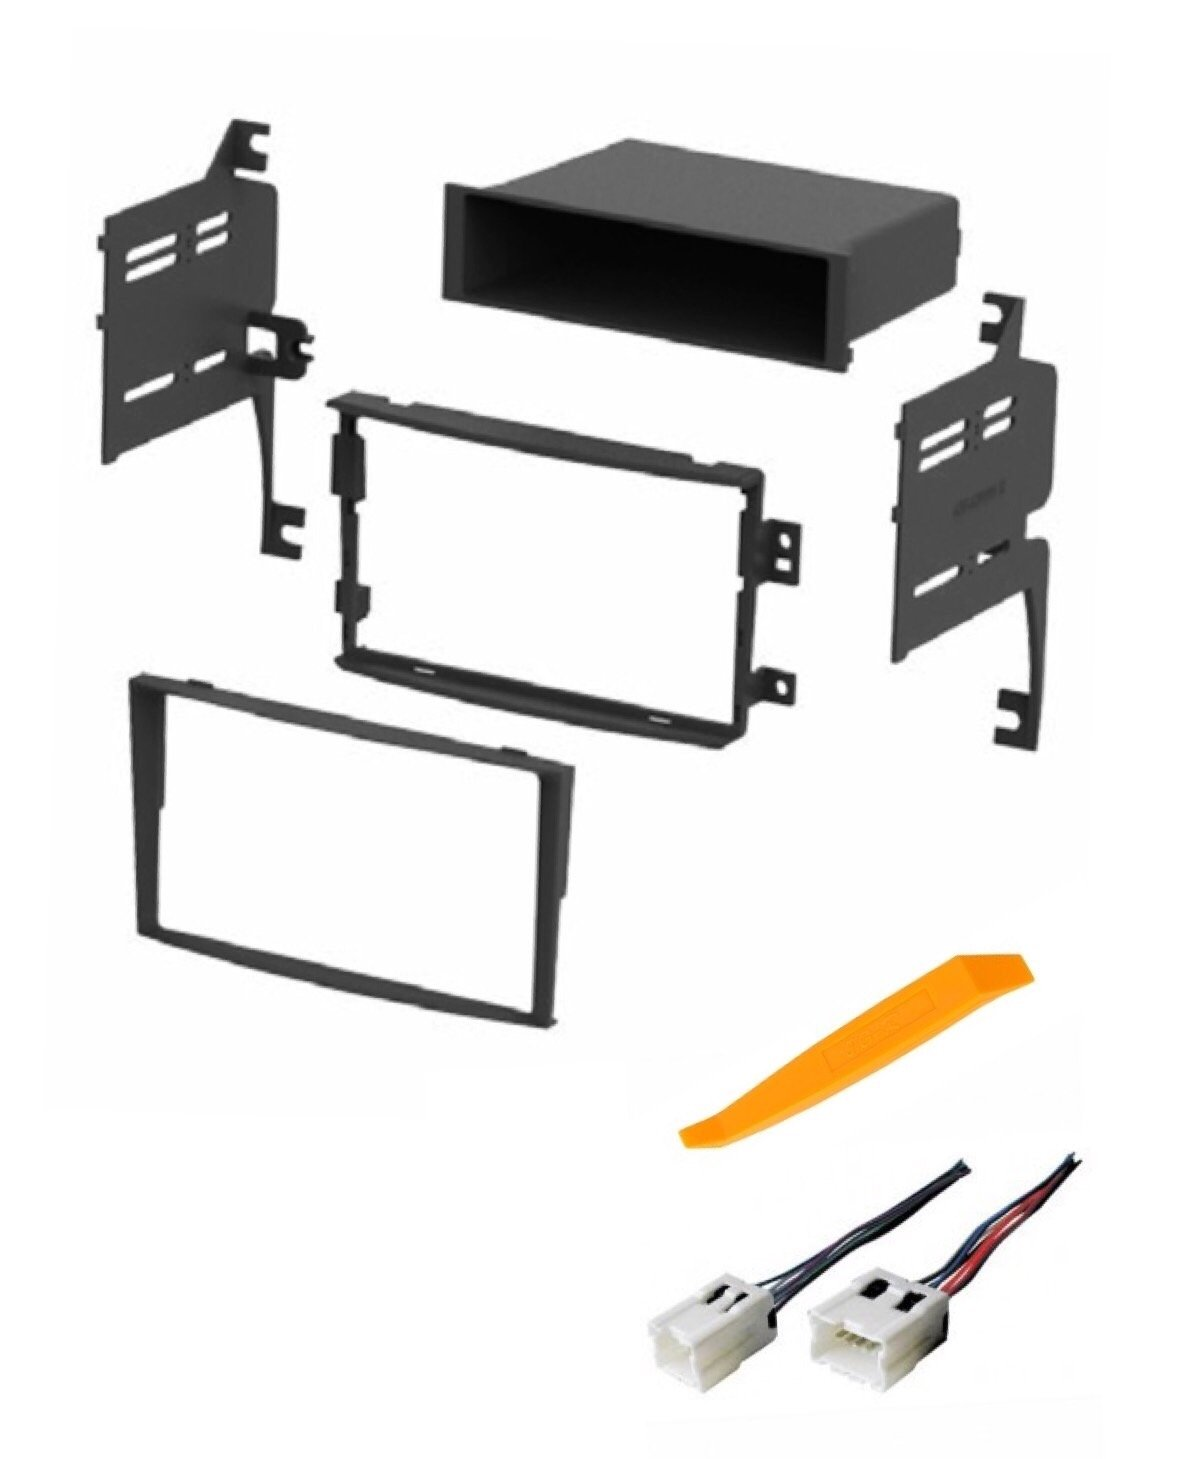 hight resolution of get quotations asc audio car stereo dash install kit and wire harness for installing an aftermarket radio for